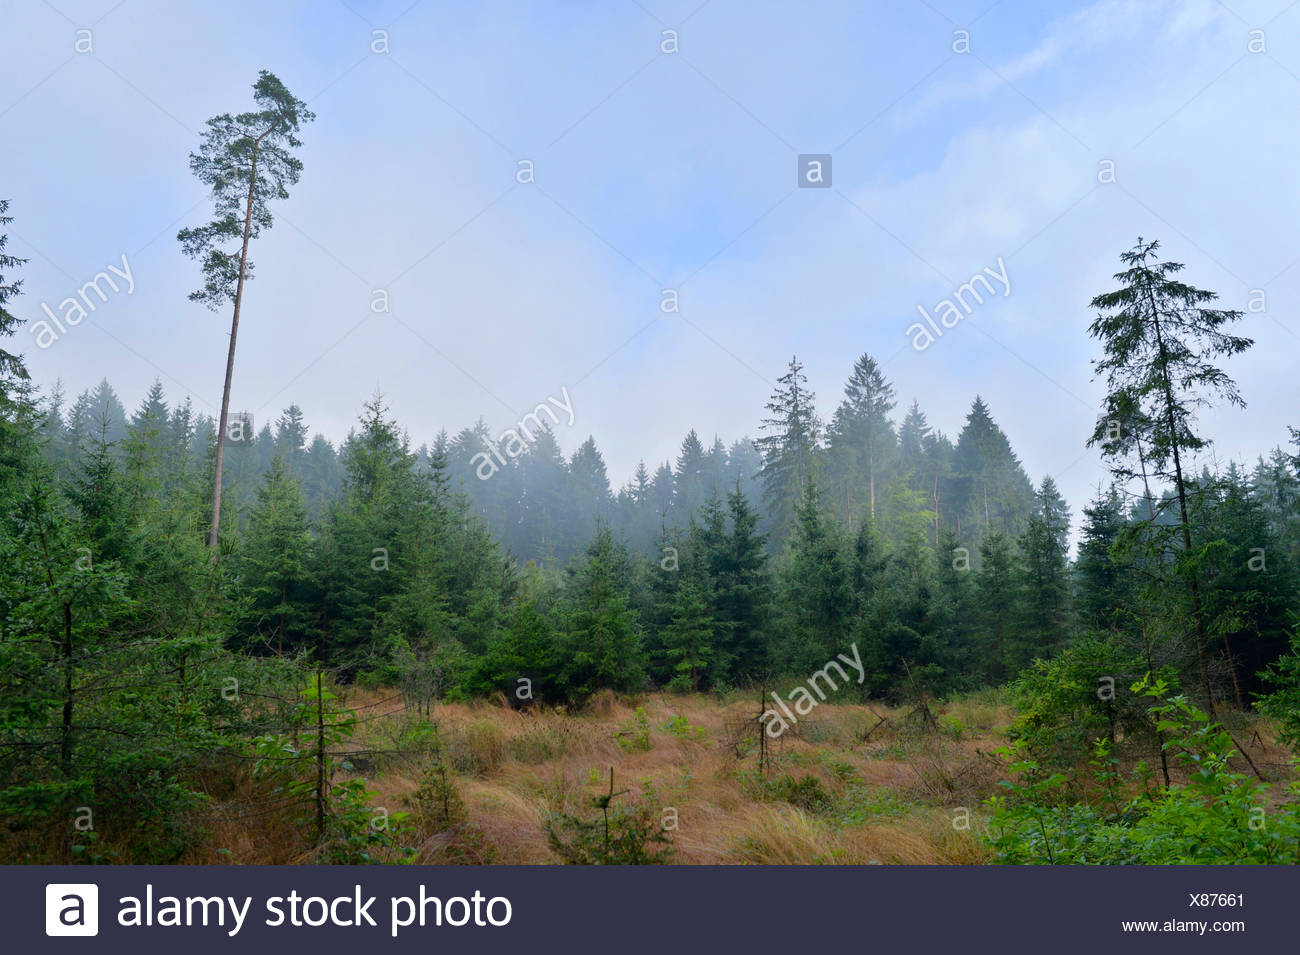 clearing in spruce forestation, Germany, Bavaria, Oberpfalz Stock Photo